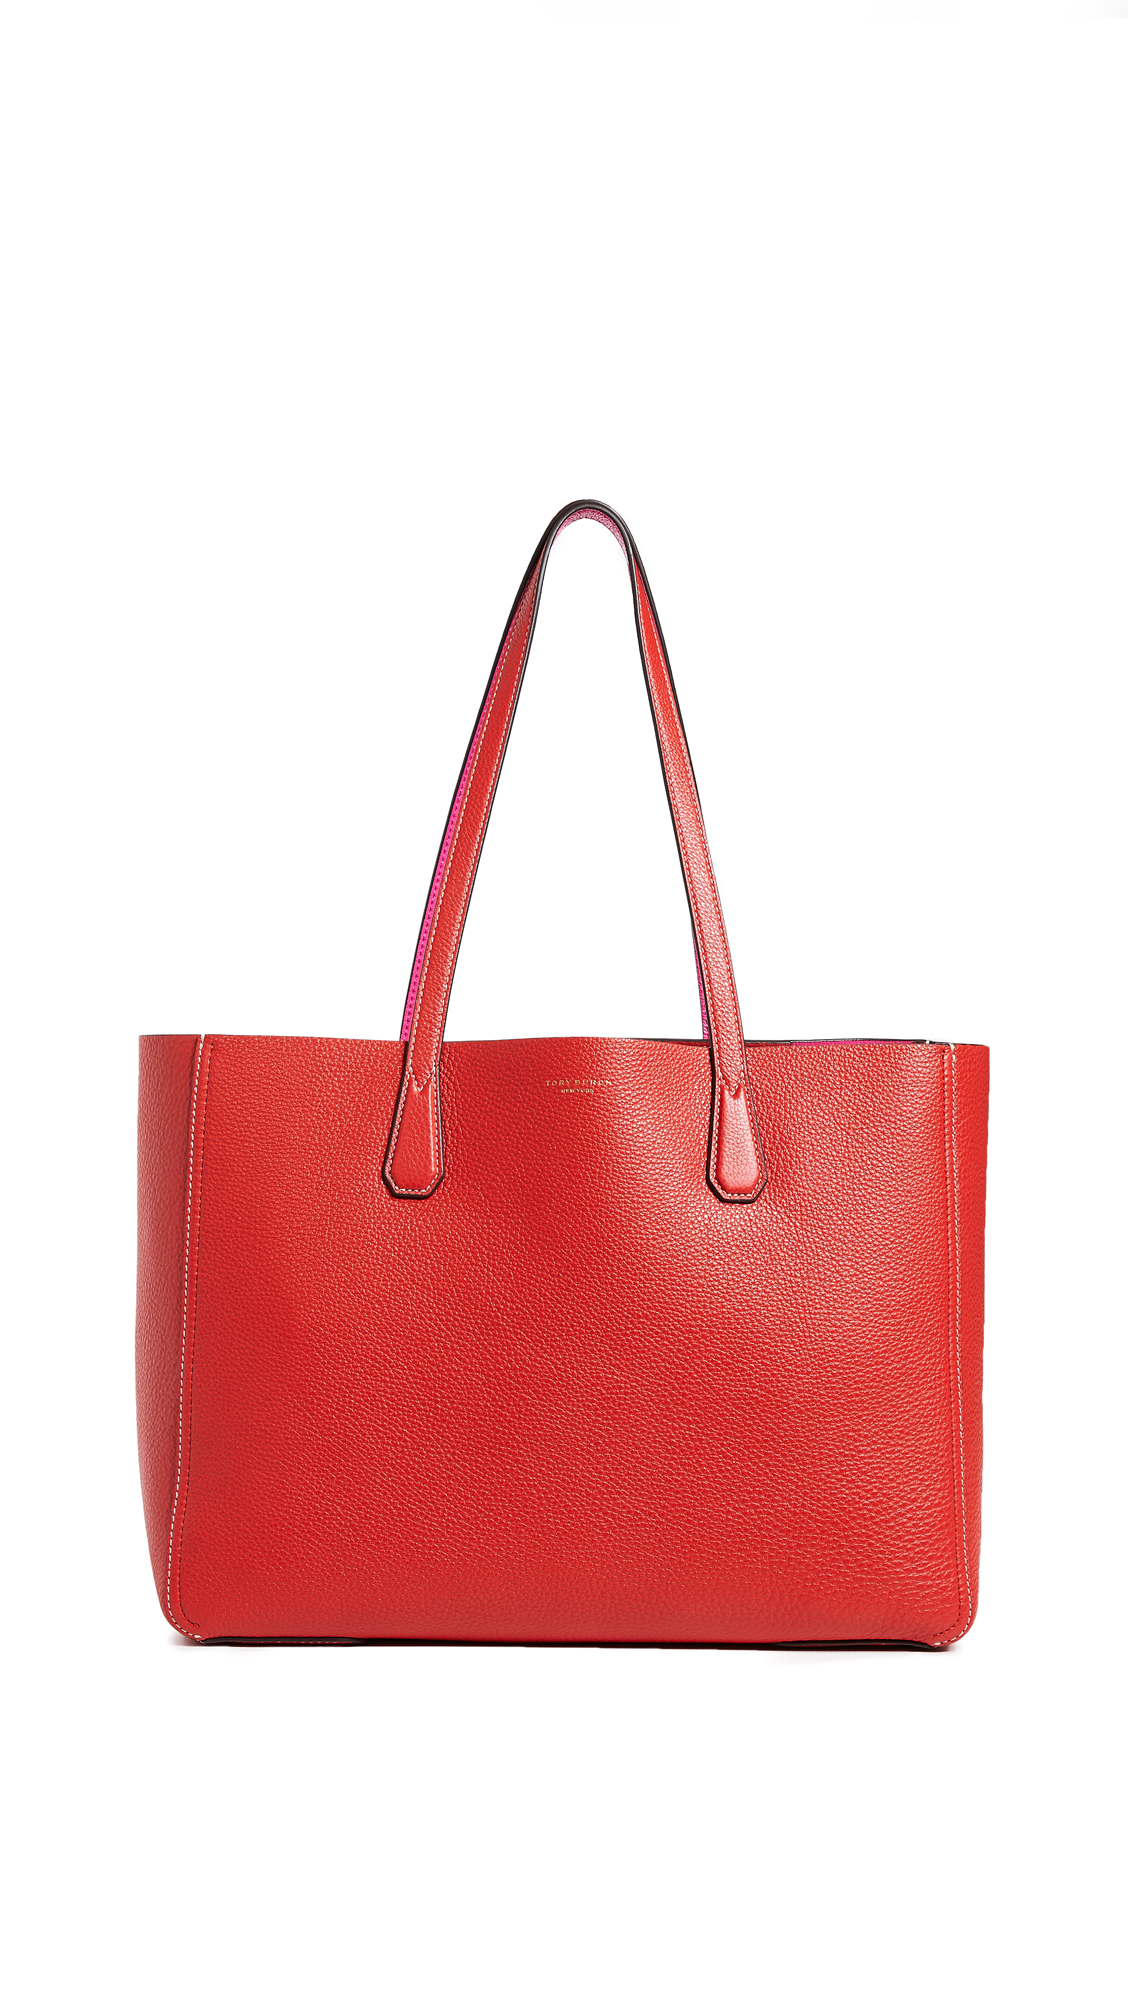 Tory Burch Phoebe Pebbled Leather Mini Tote Bag In Red Pink ... 2e44c02ccb